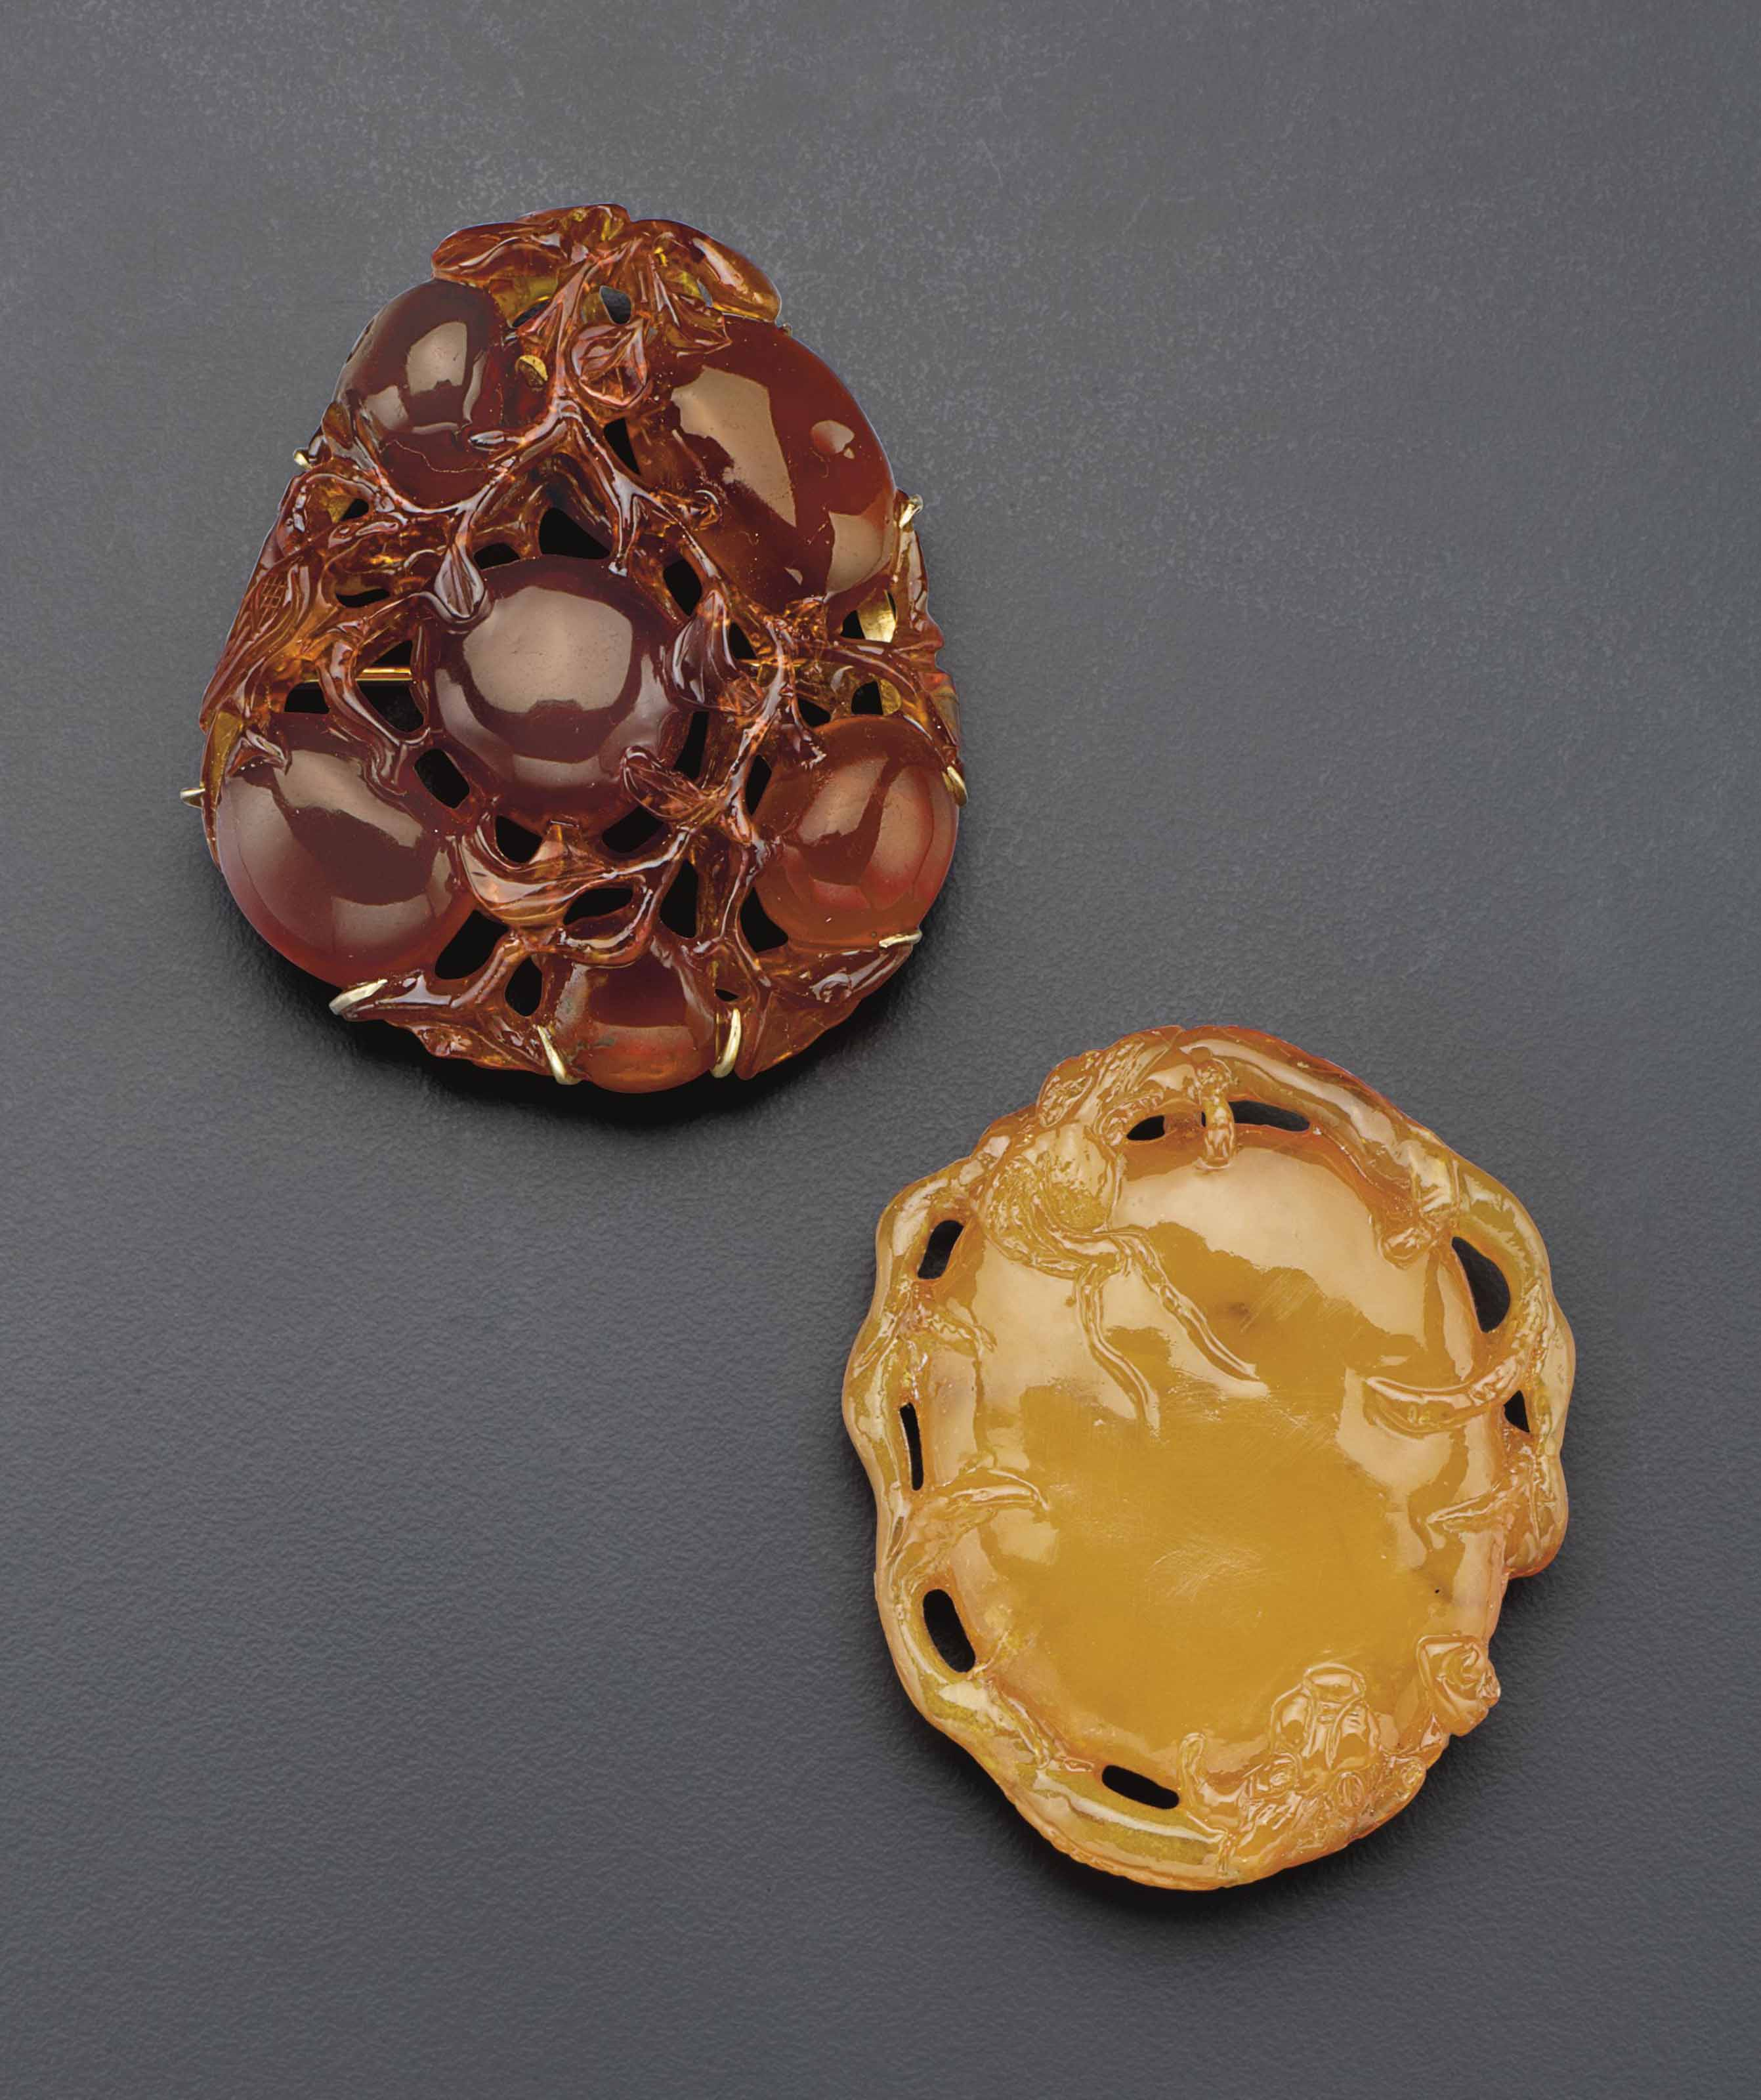 TWO SMALL AMBER CARVINGS